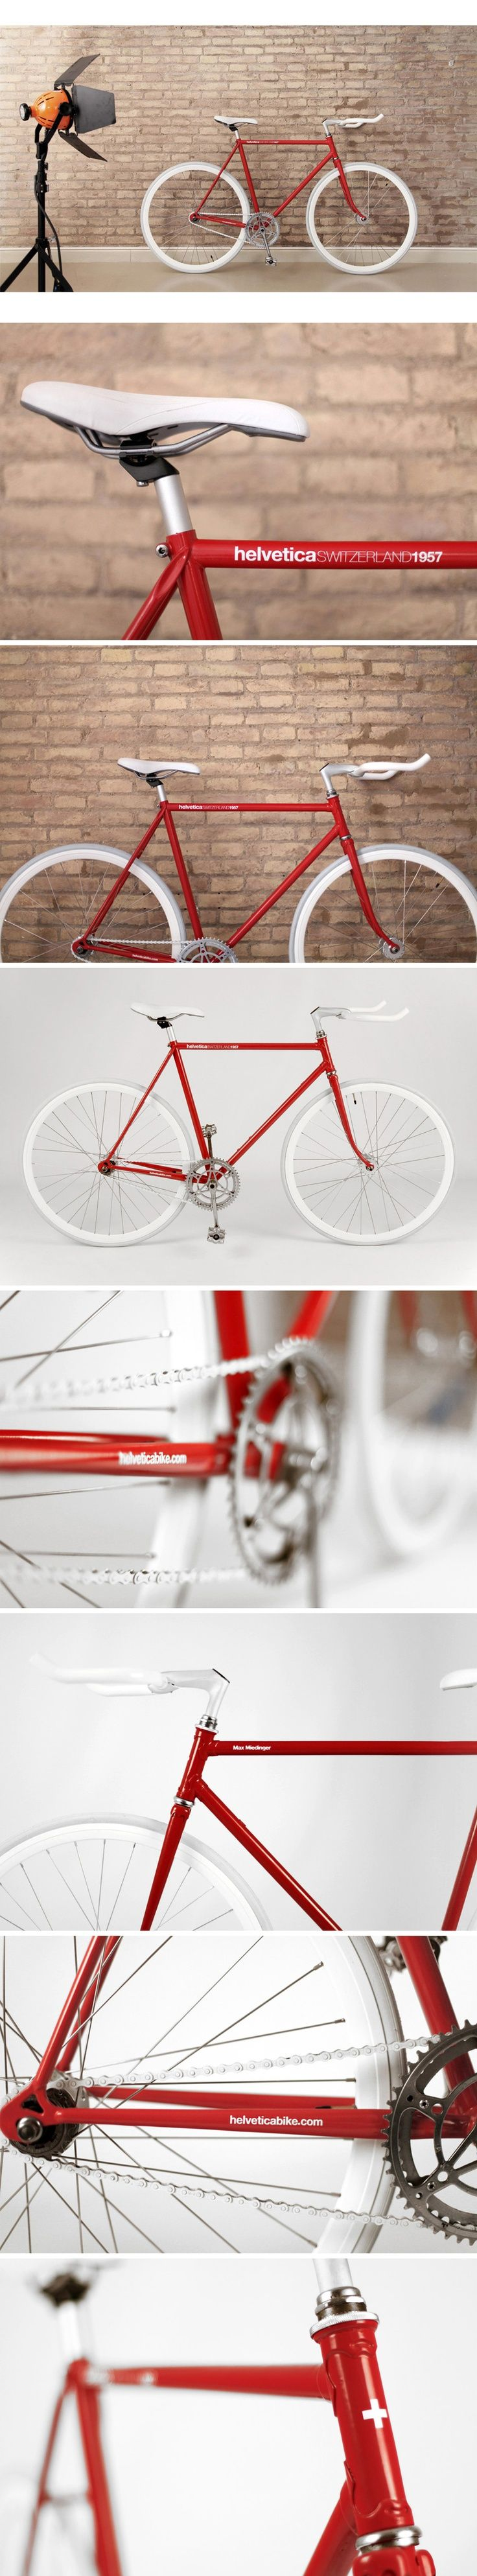 Helvetica fixed bike